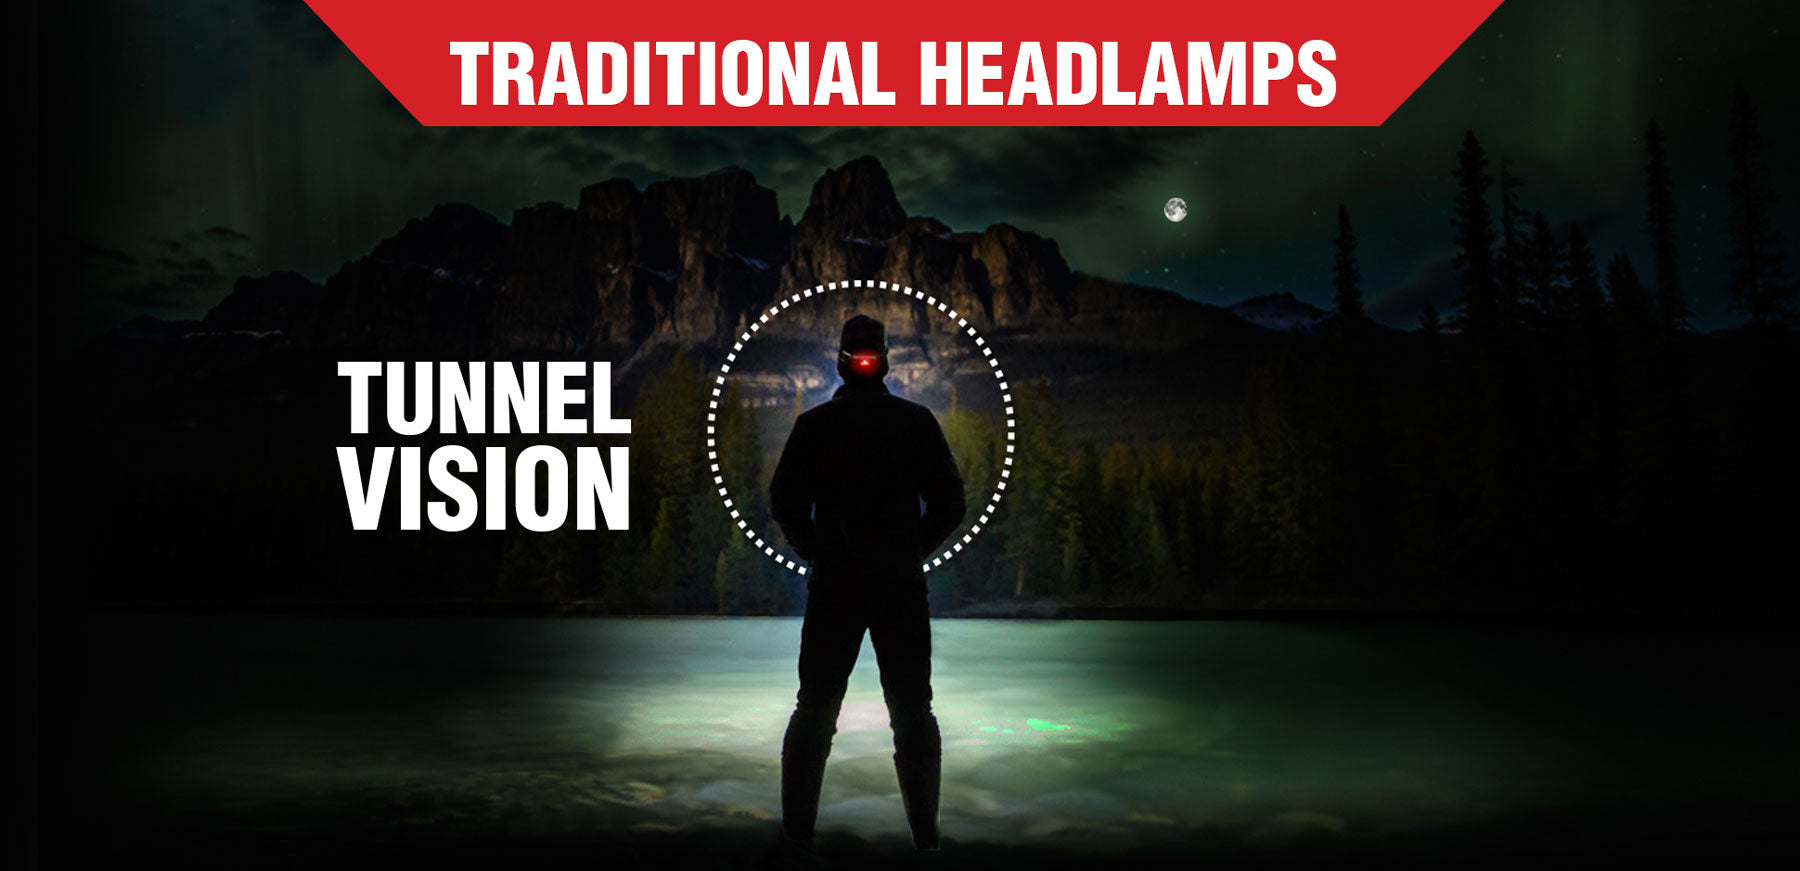 Tunnel vision created by traditional headlamp